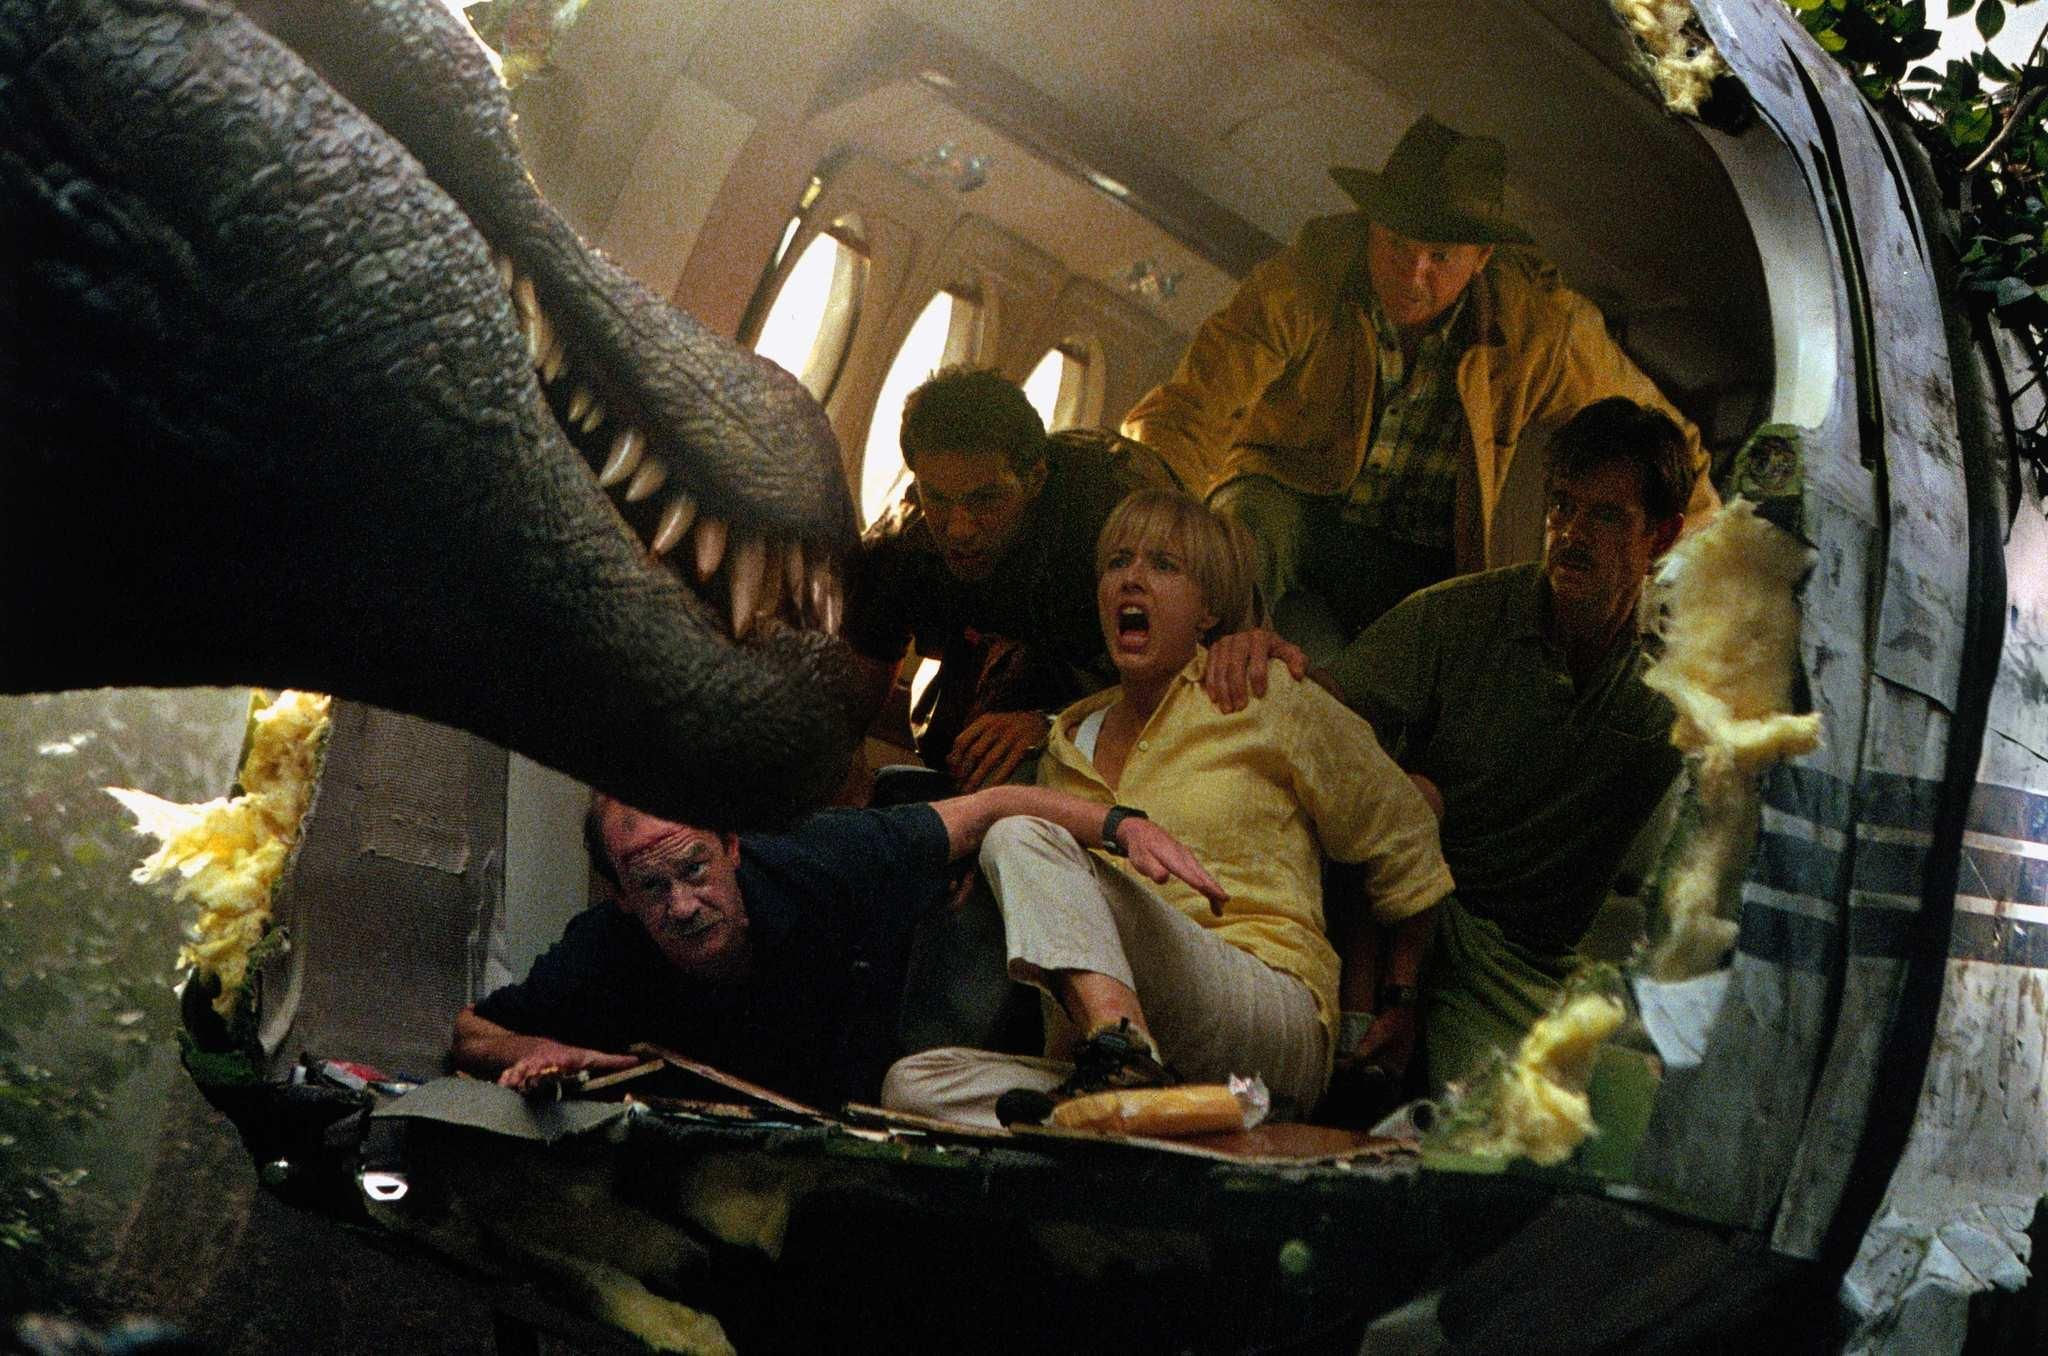 Jurassic park 3 revisited this is how you make dinosaurs - Film de dinosaure jurassic park ...